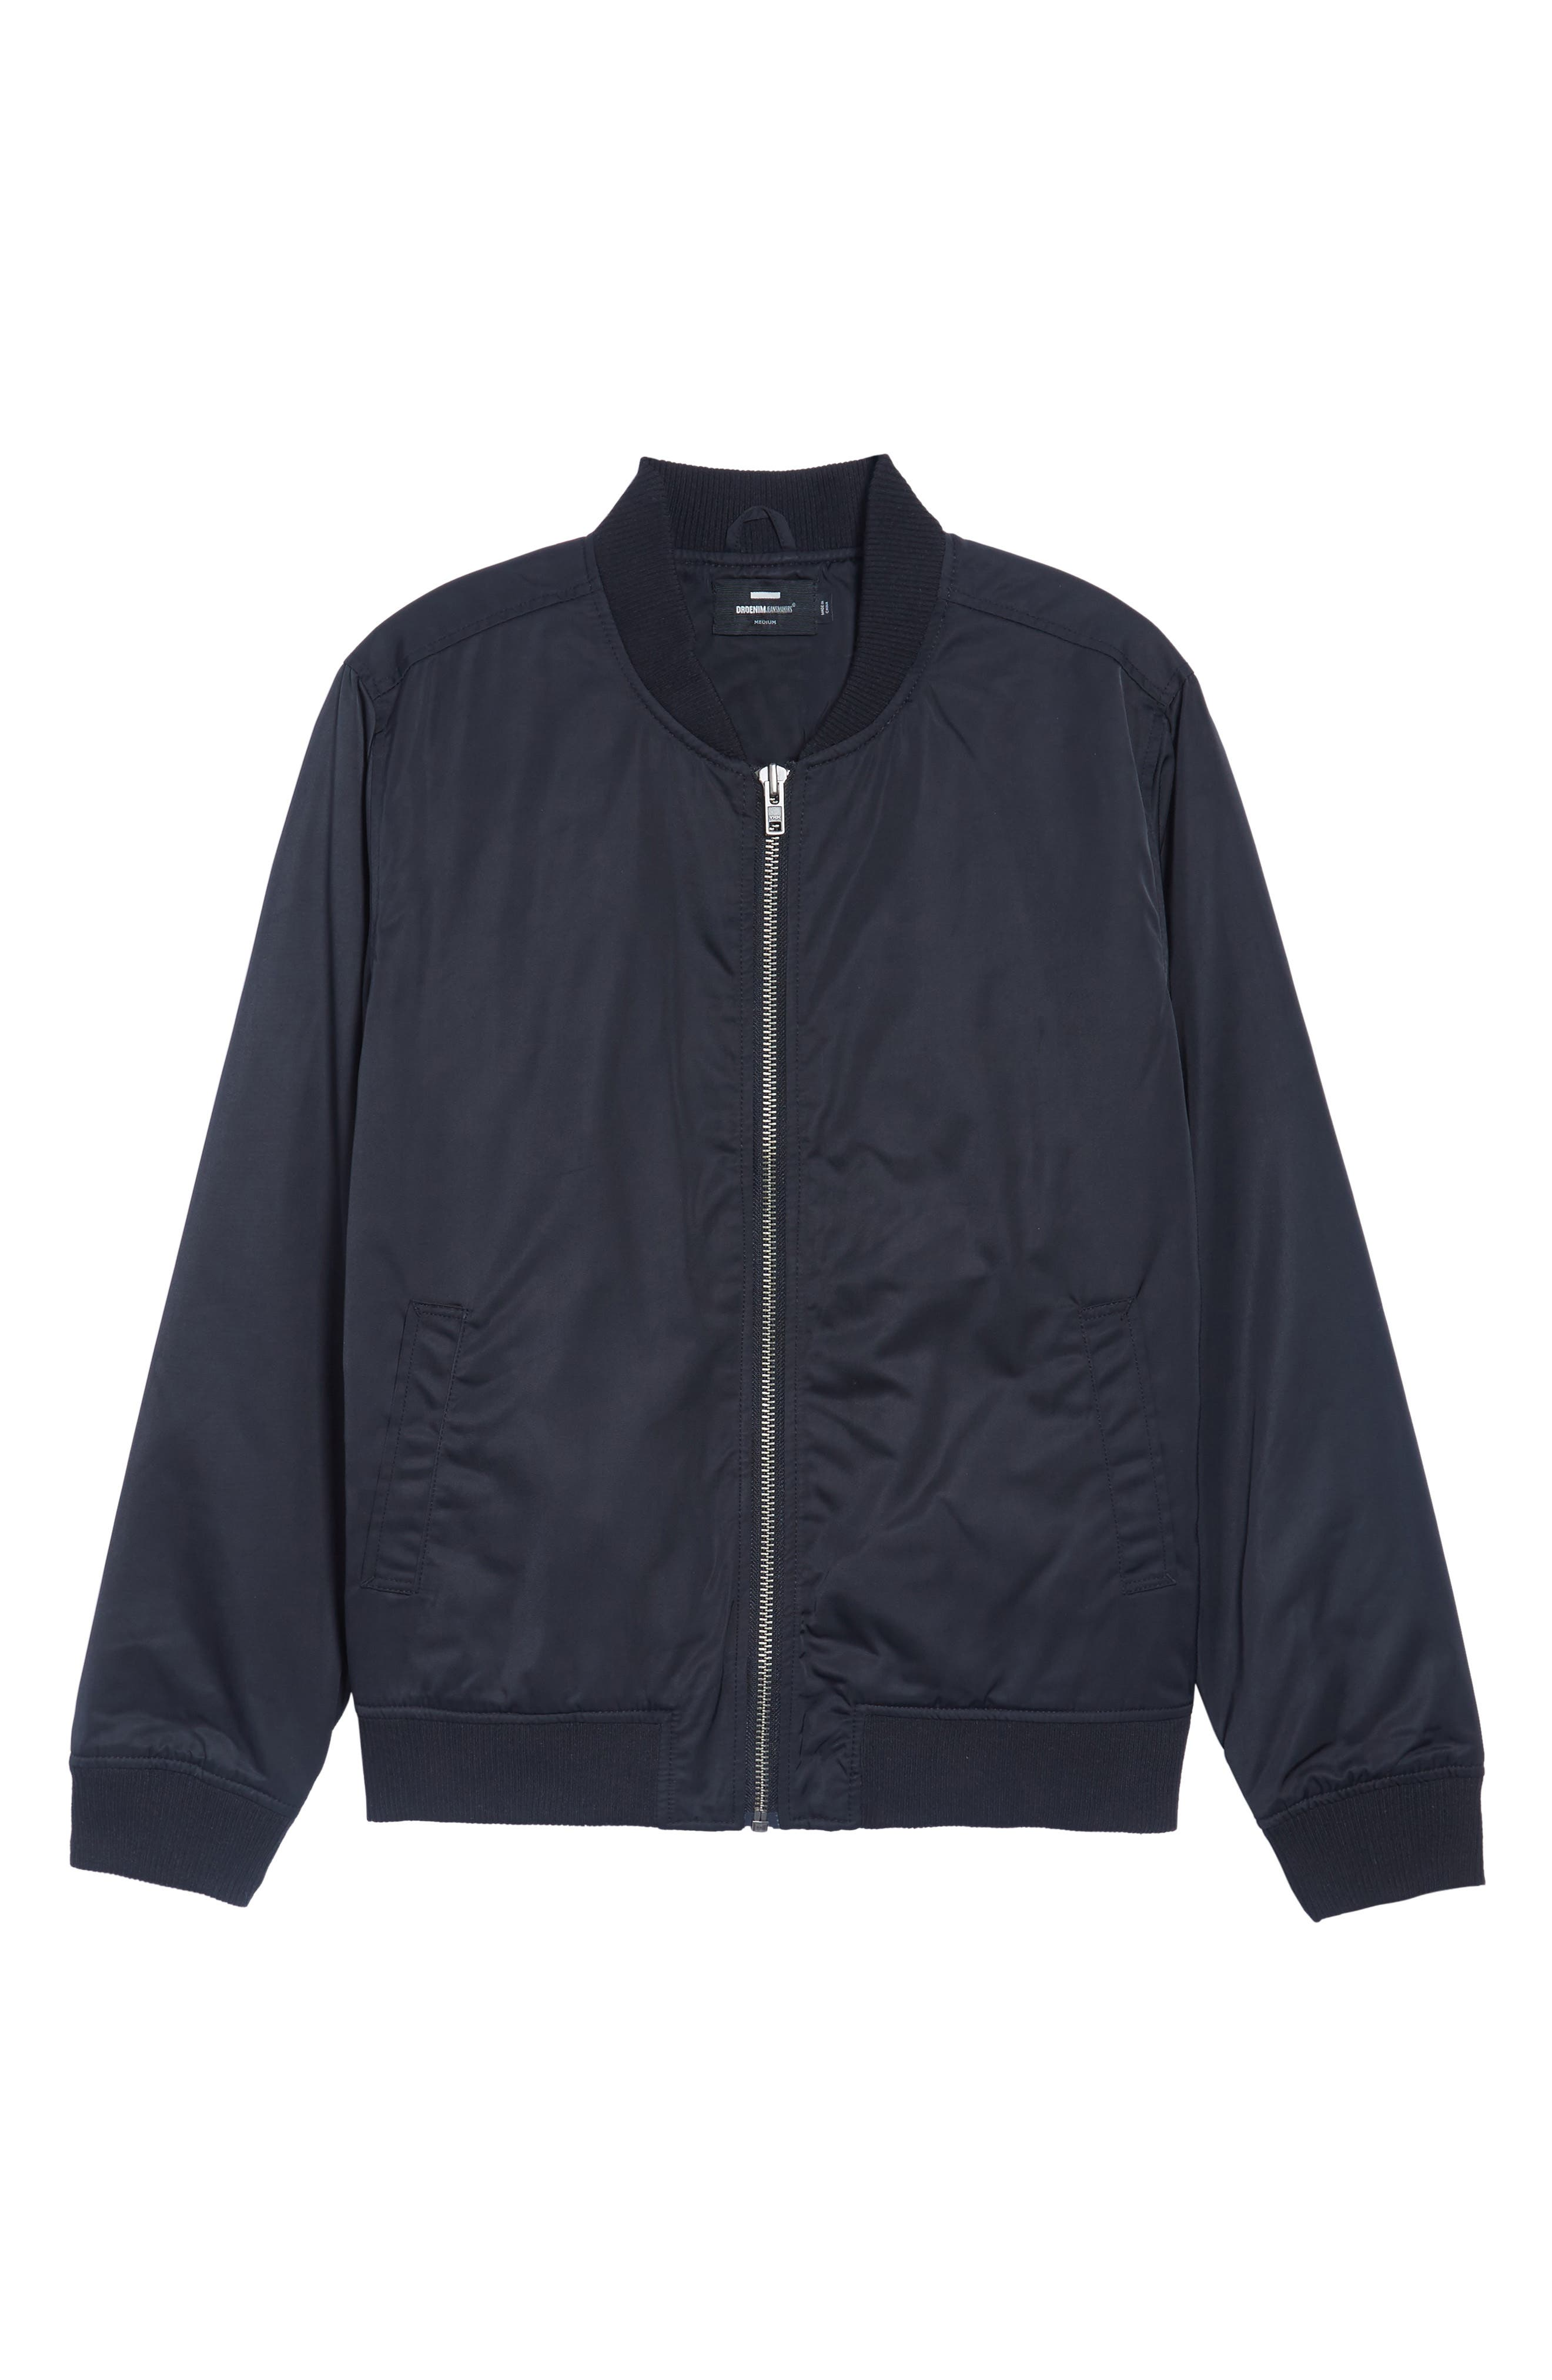 Mason Bomber Jacket,                             Main thumbnail 1, color,                             Black